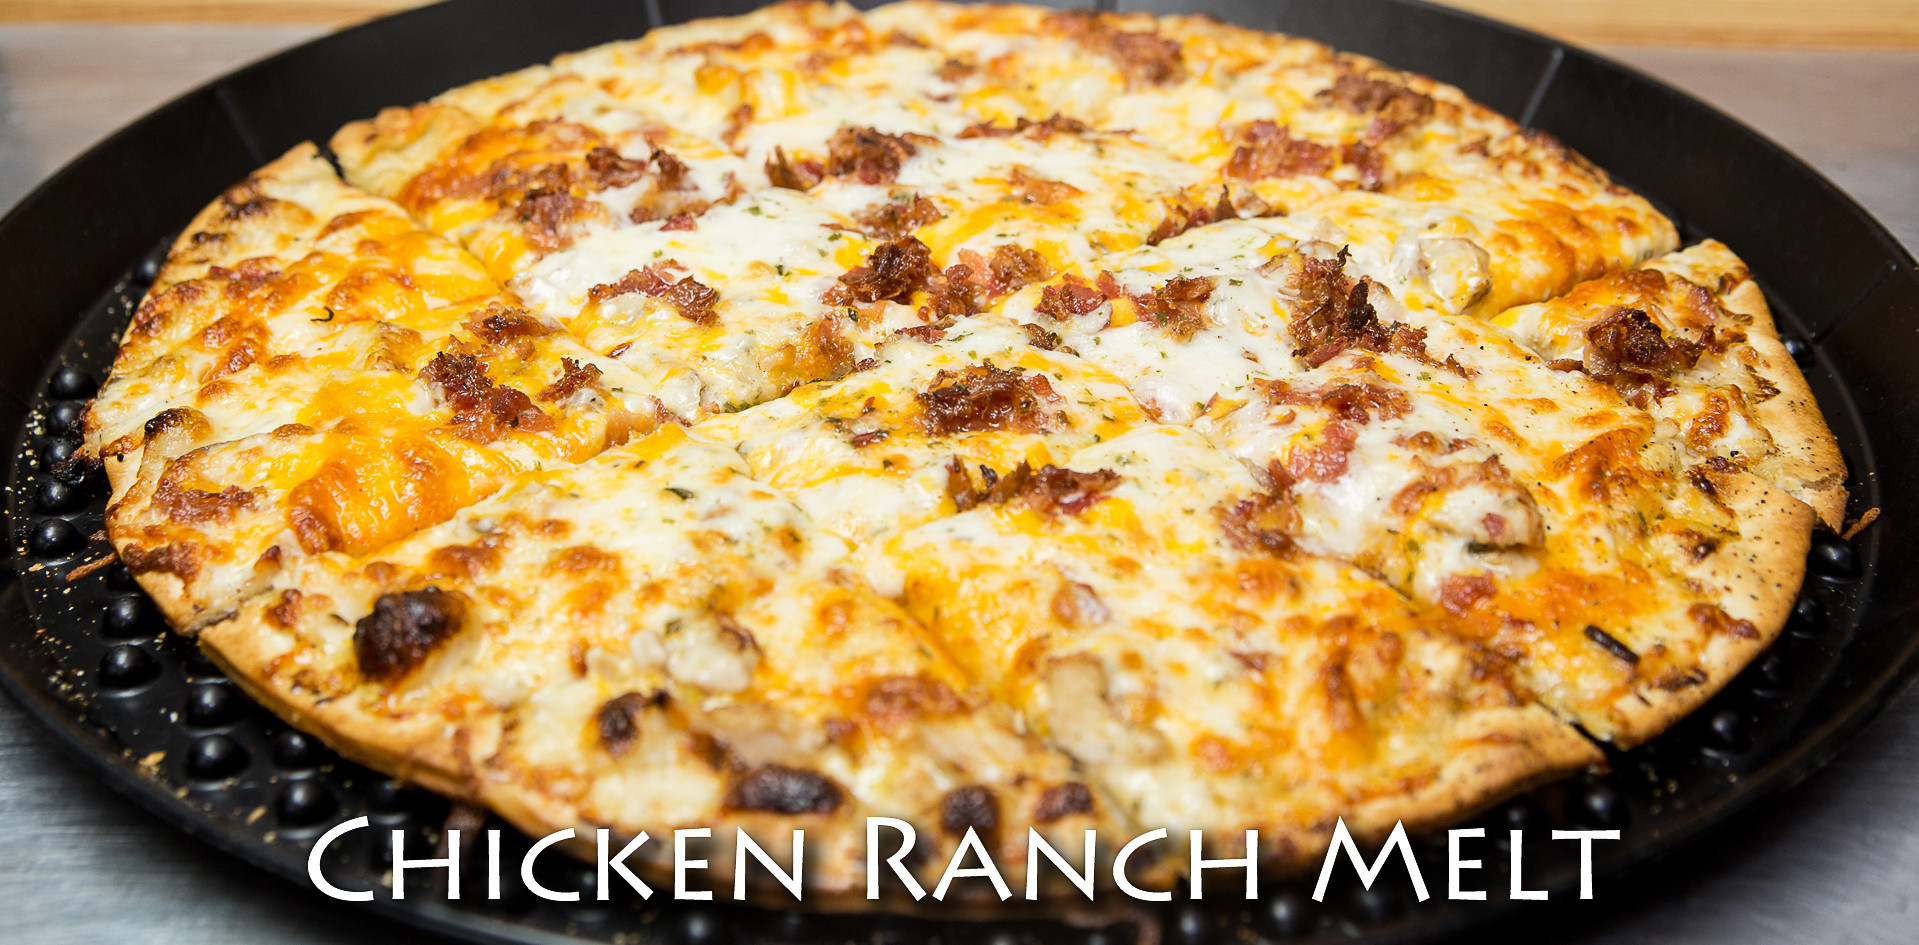 Chicken Ranch Melt Thin Crust Pizza